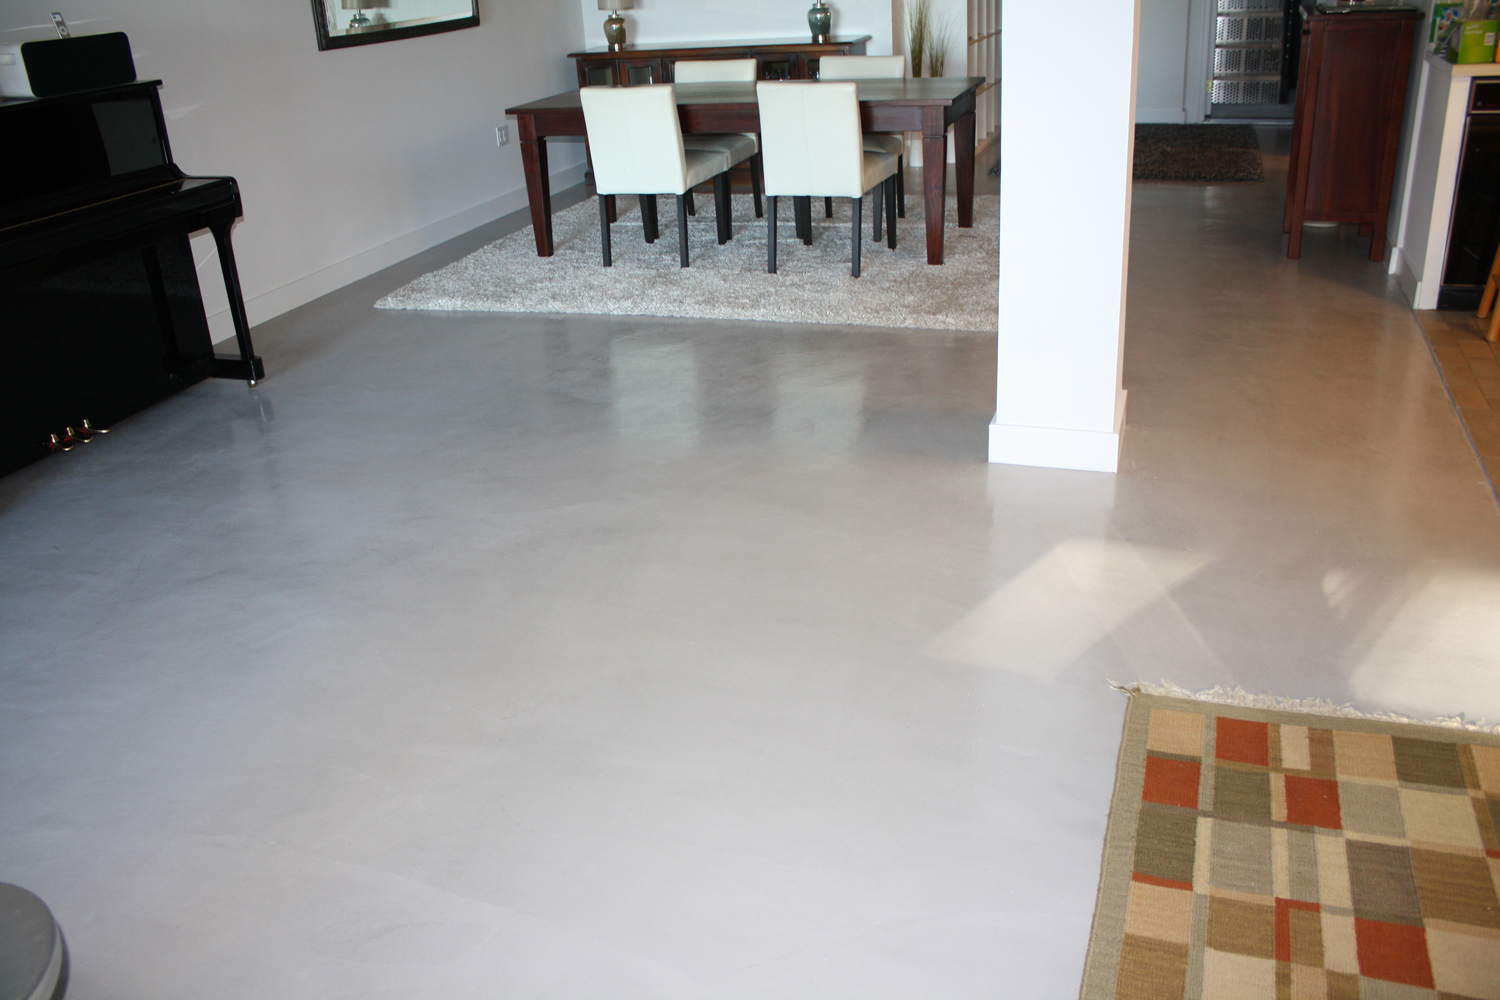 Triple 7 Bondcoat, Base coat SMPro white, MT 3000 liquid polymer w Stone gray color, 2nd coat, same SMP w Stone gray color, 3rd coat, of Brickform Microtopping white w Stone gray color. sand w 100 grit paper, application of two coats of Gem Seal 100